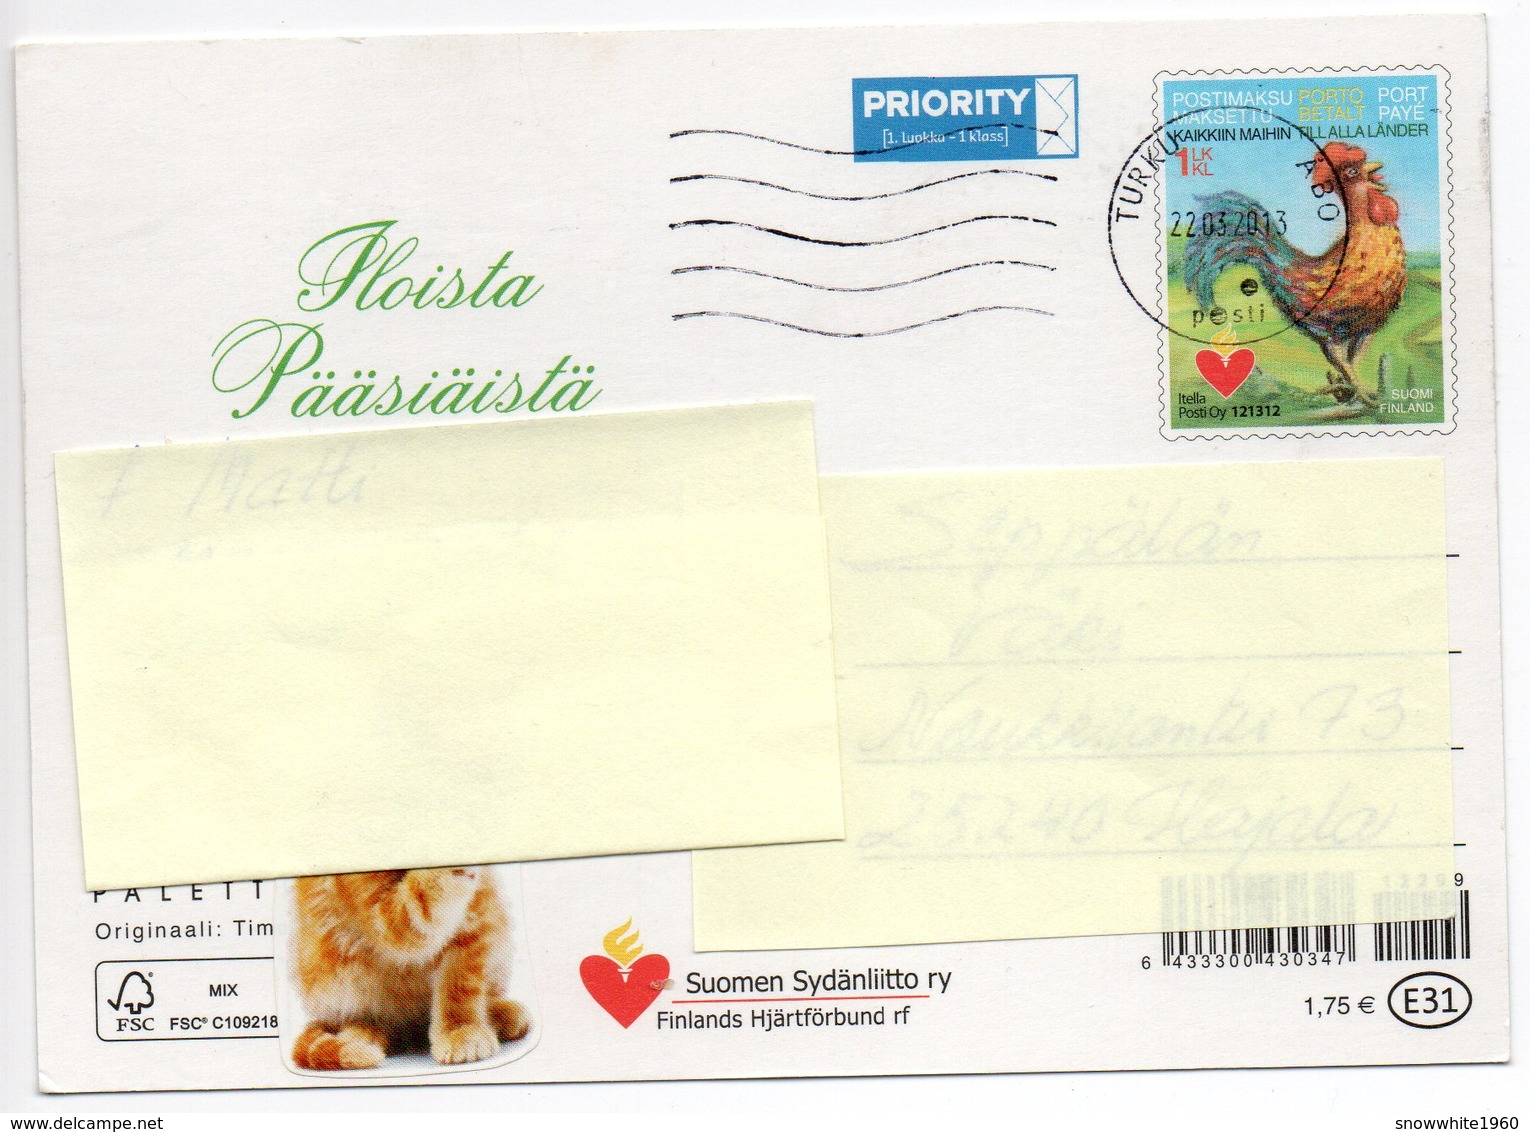 Postal Stationery - FINLAND - HEART ASSOCIATION - 2013 - Postage Paid - EASTER - CHICKENS - EASTER WITCH & CAT - Finlandia